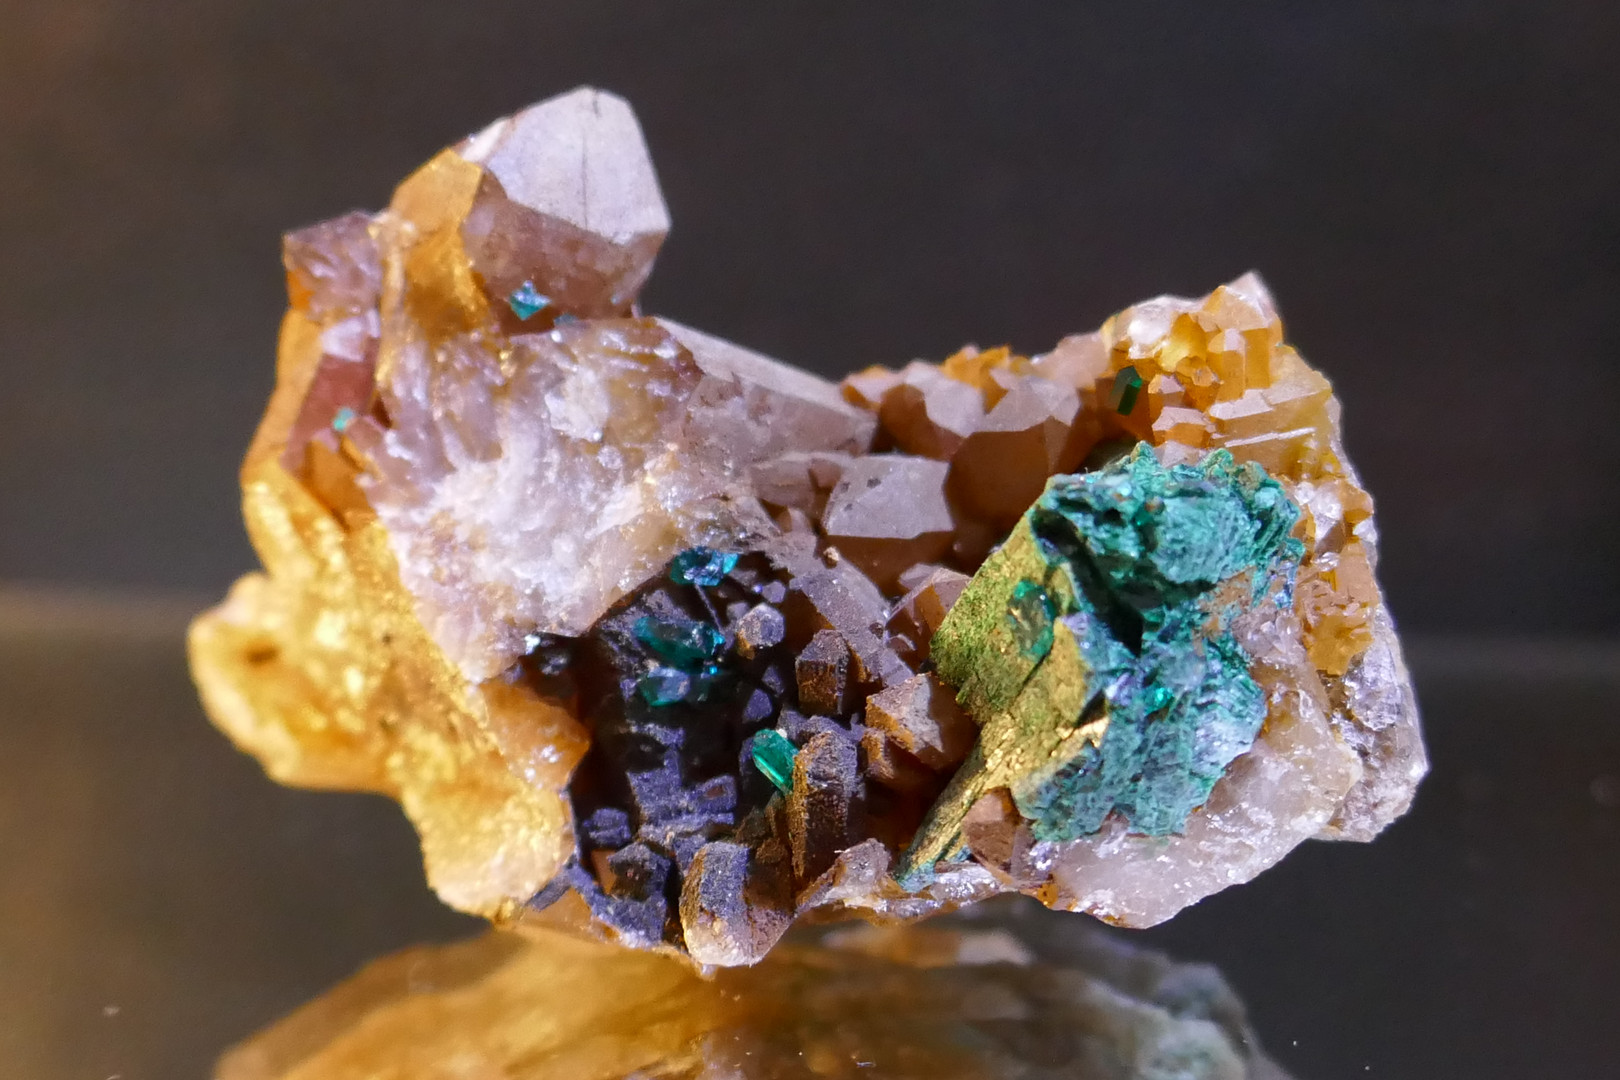 Goethite stained Quartz with Dioptase and Malachite